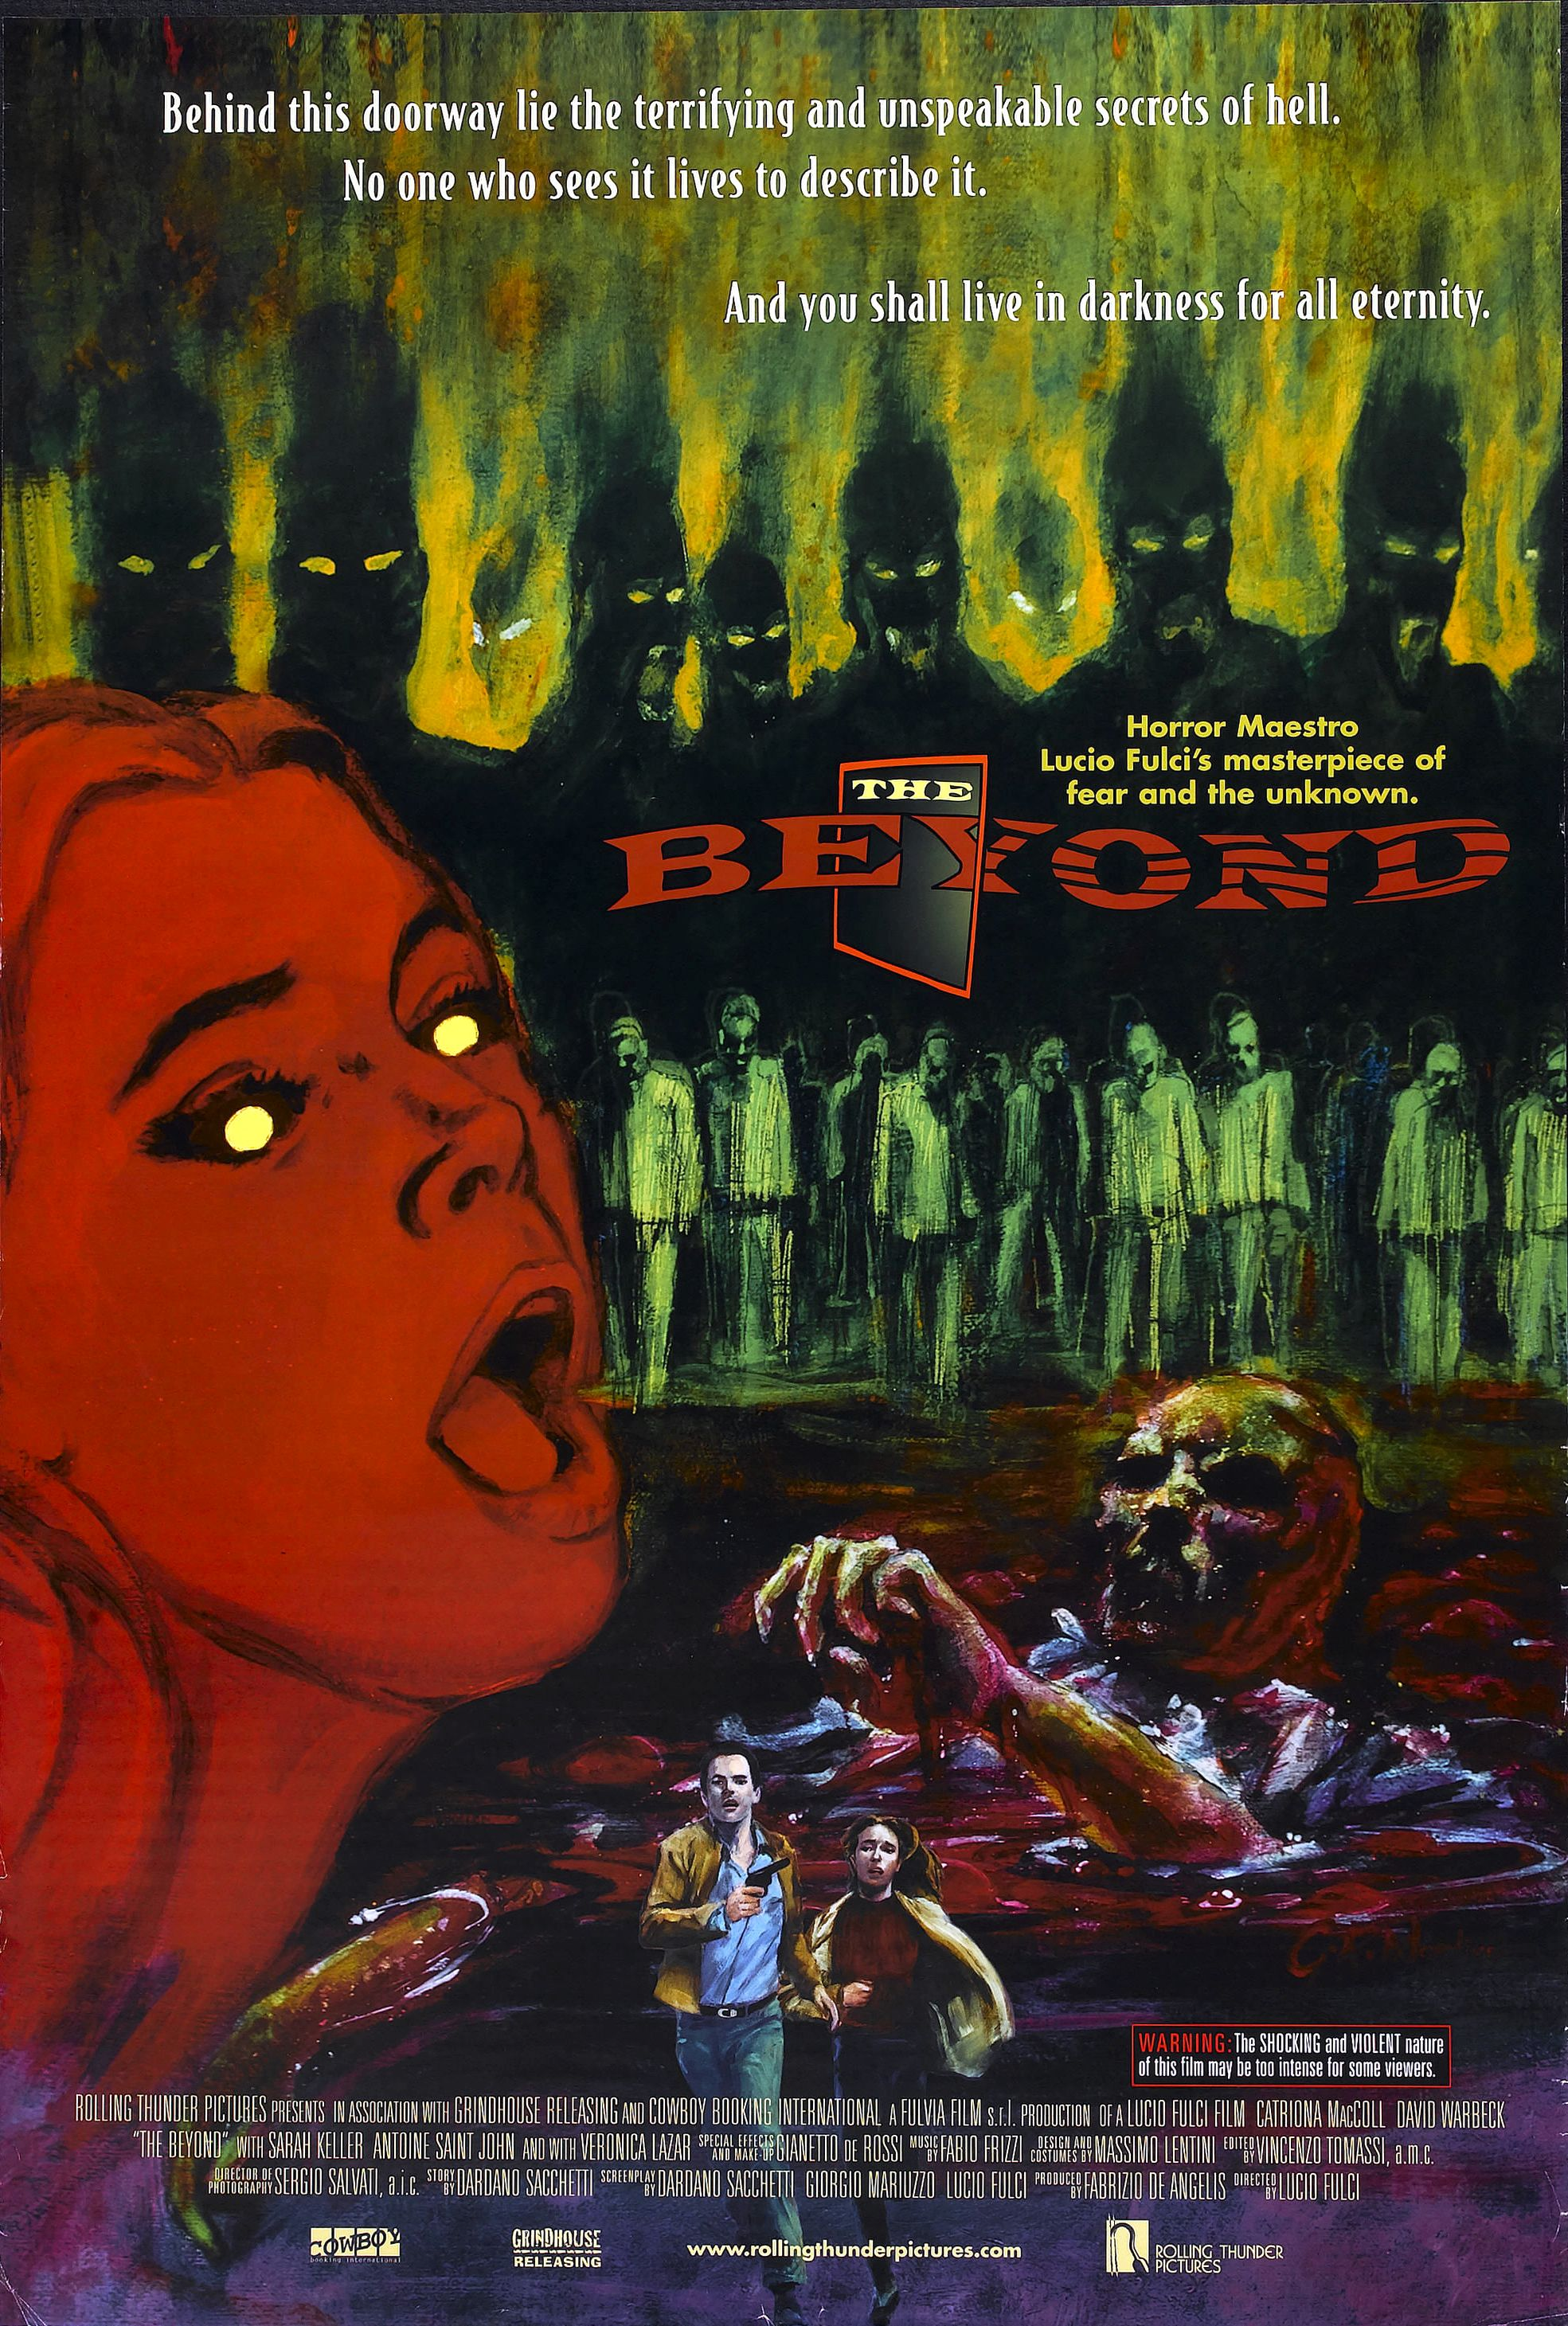 Movie Poster for &quotThe Beyond&quot